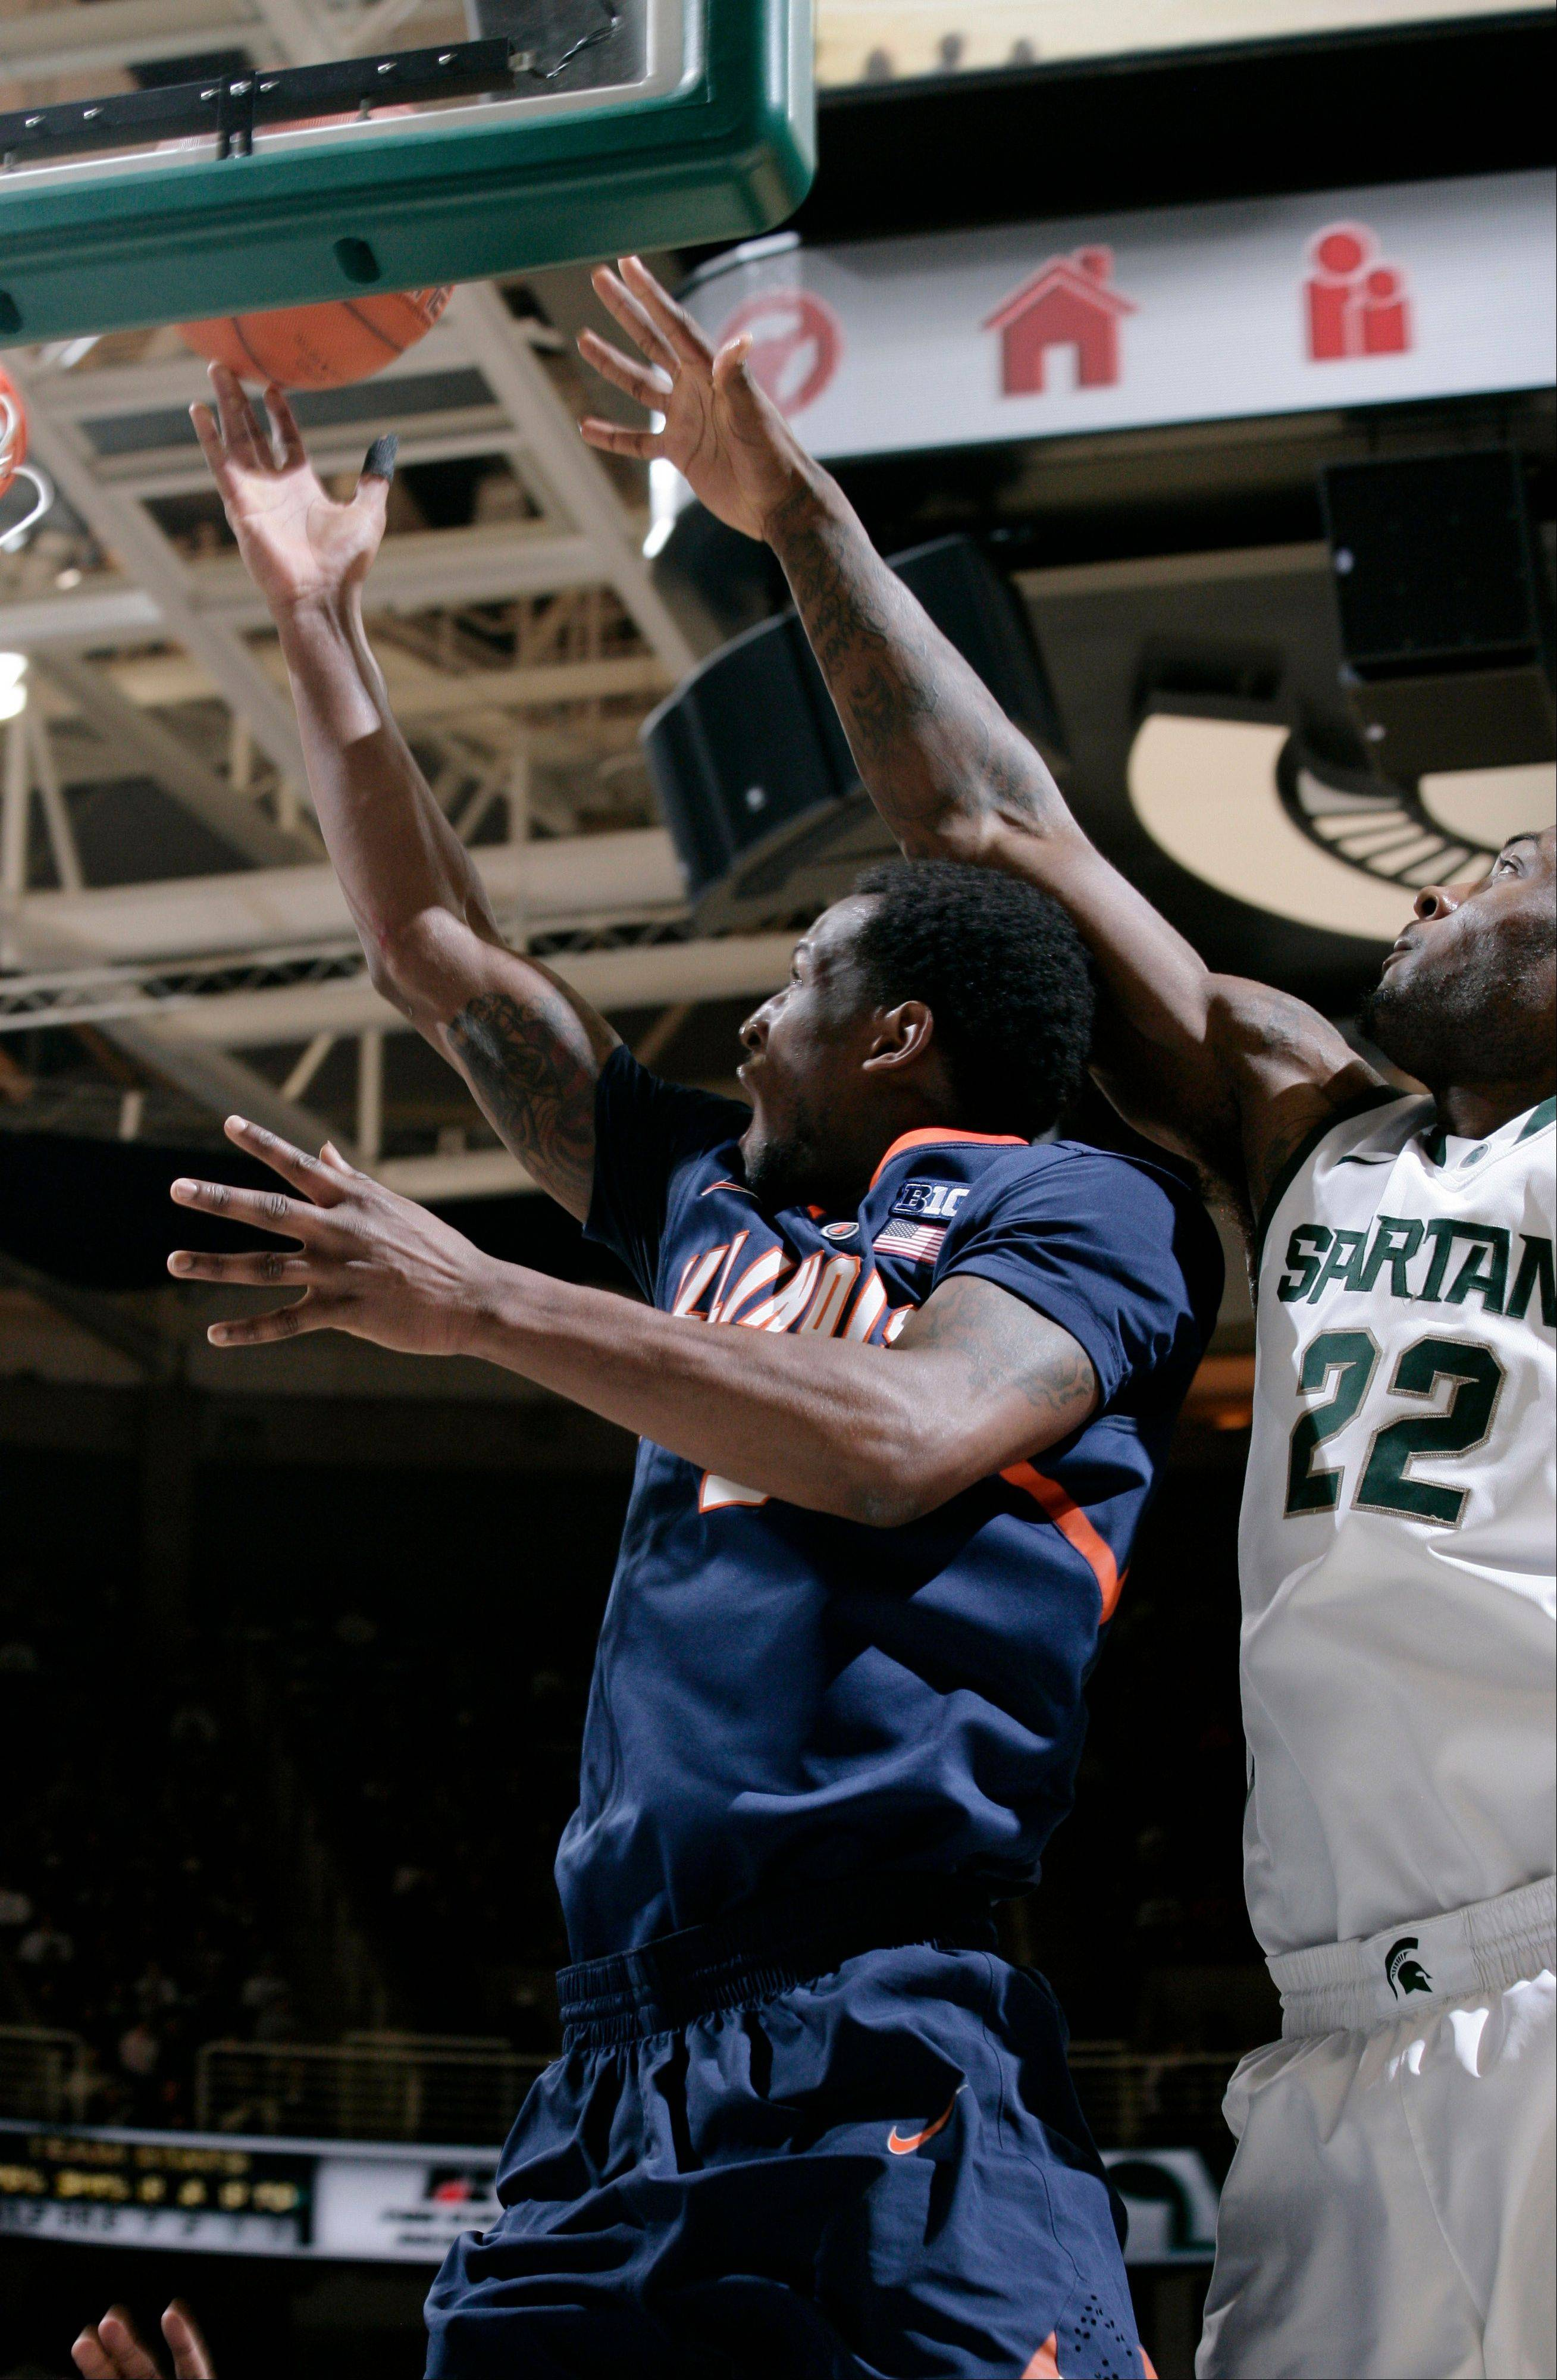 Illinois' D.J. Richardson, left, puts up a layup next to Michigan State's Branden Dawson (22) during the first half of an NCAA college basketball game Thursday in East Lansing, Mich.